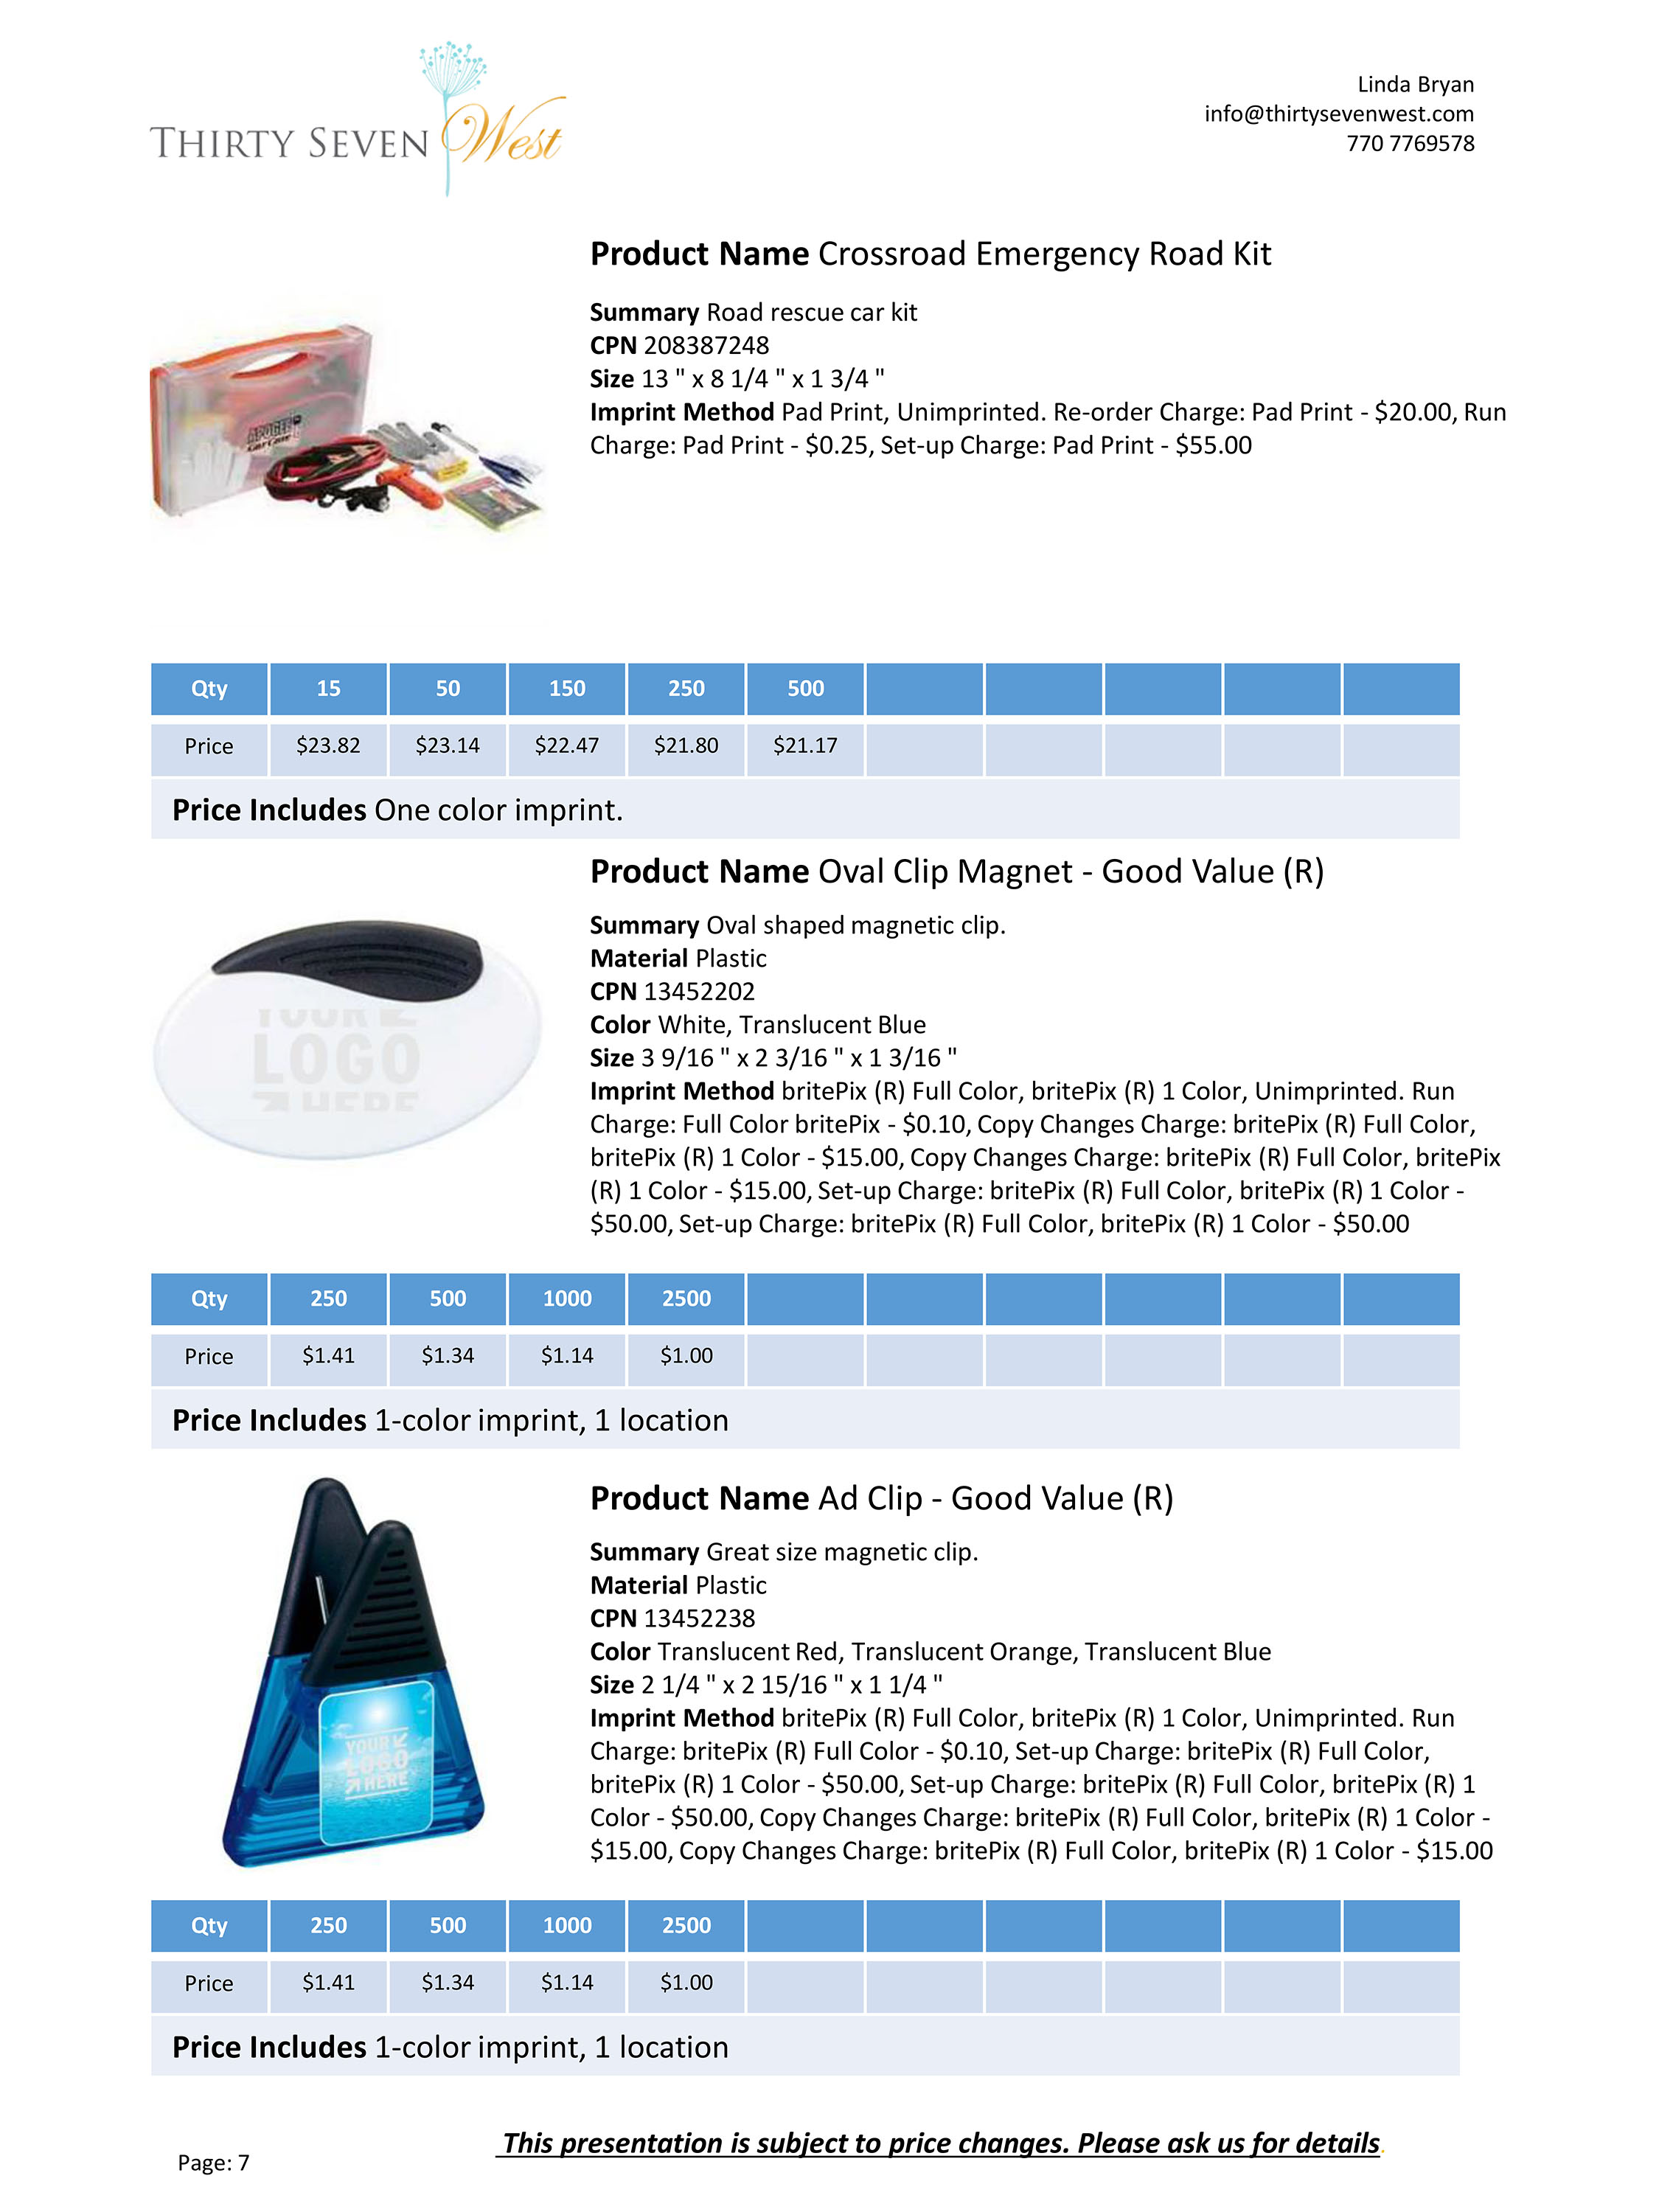 home-items-for-clients-7-300.jpg